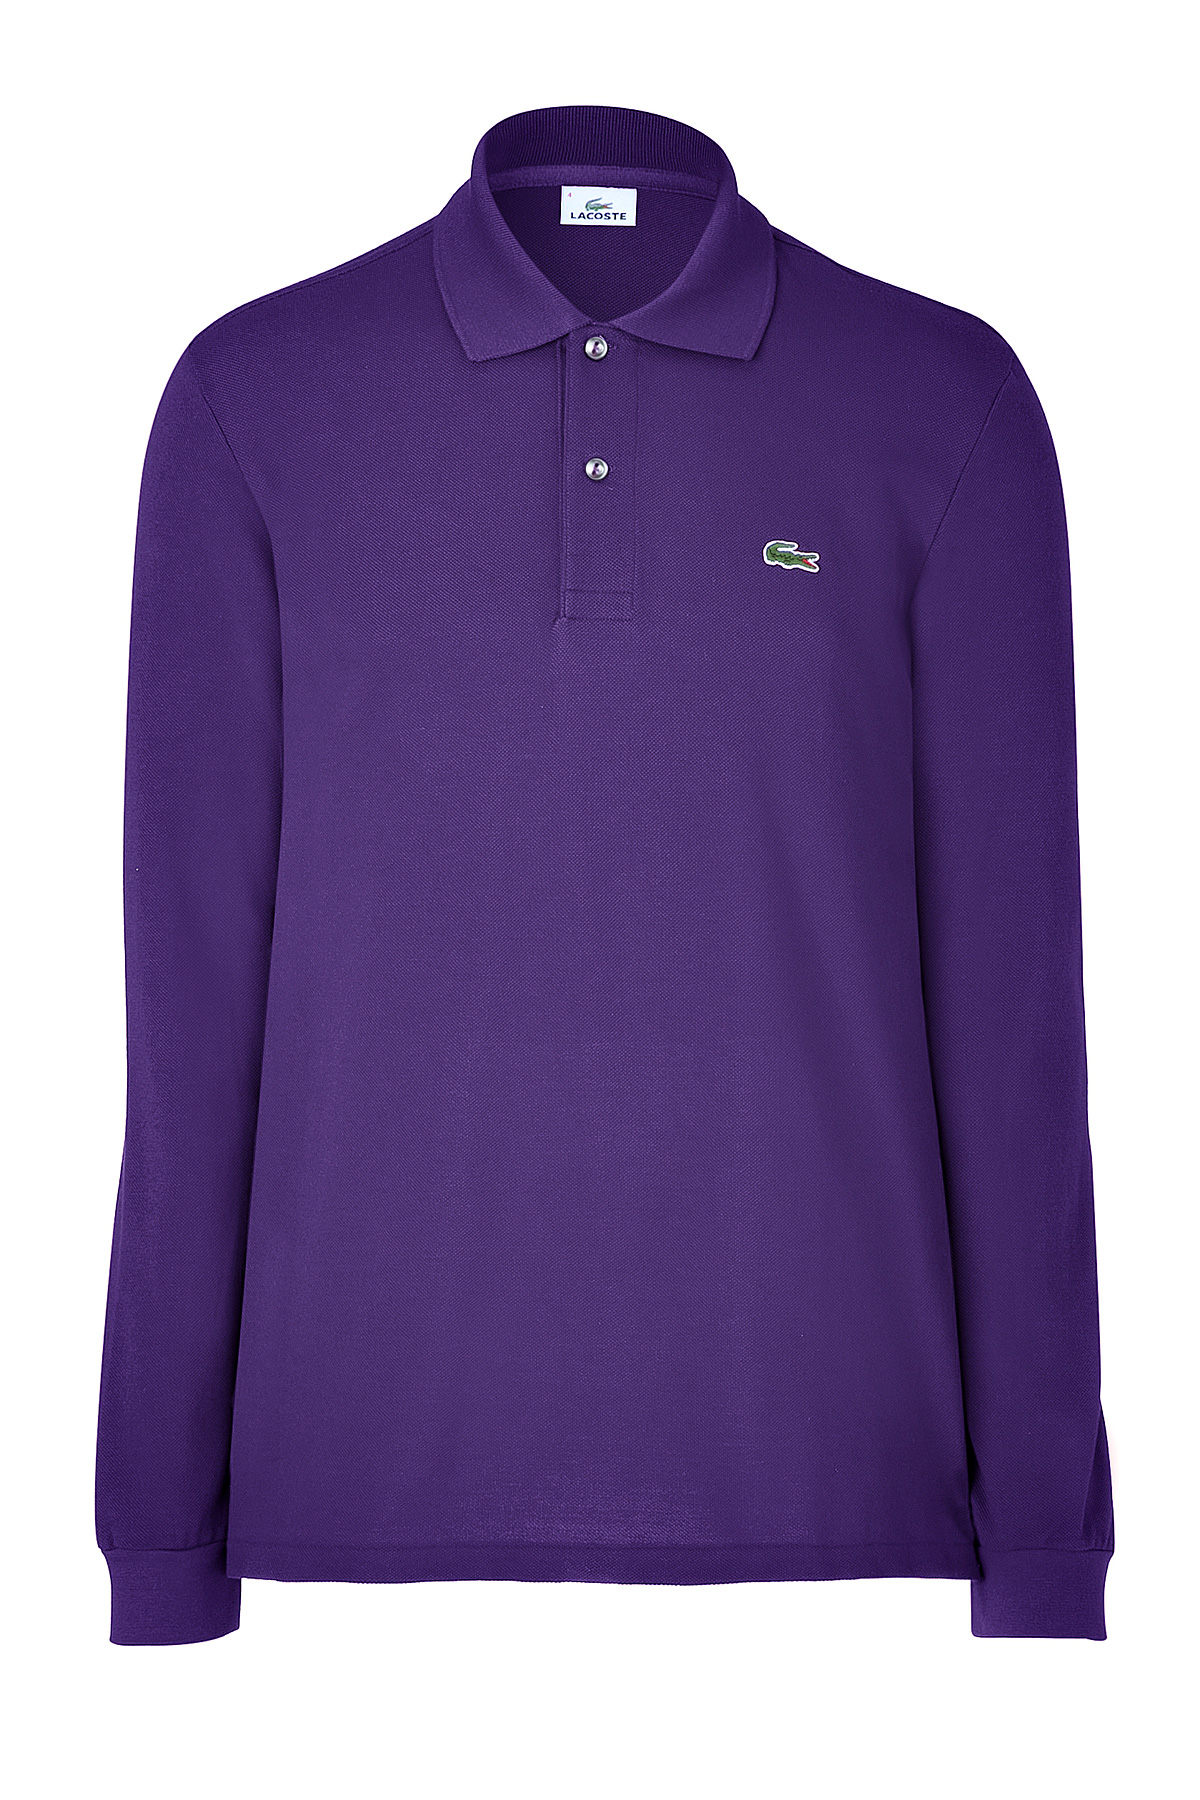 Lacoste violet long sleeve polo shirt in purple for men for Long sleeve purple polo shirt